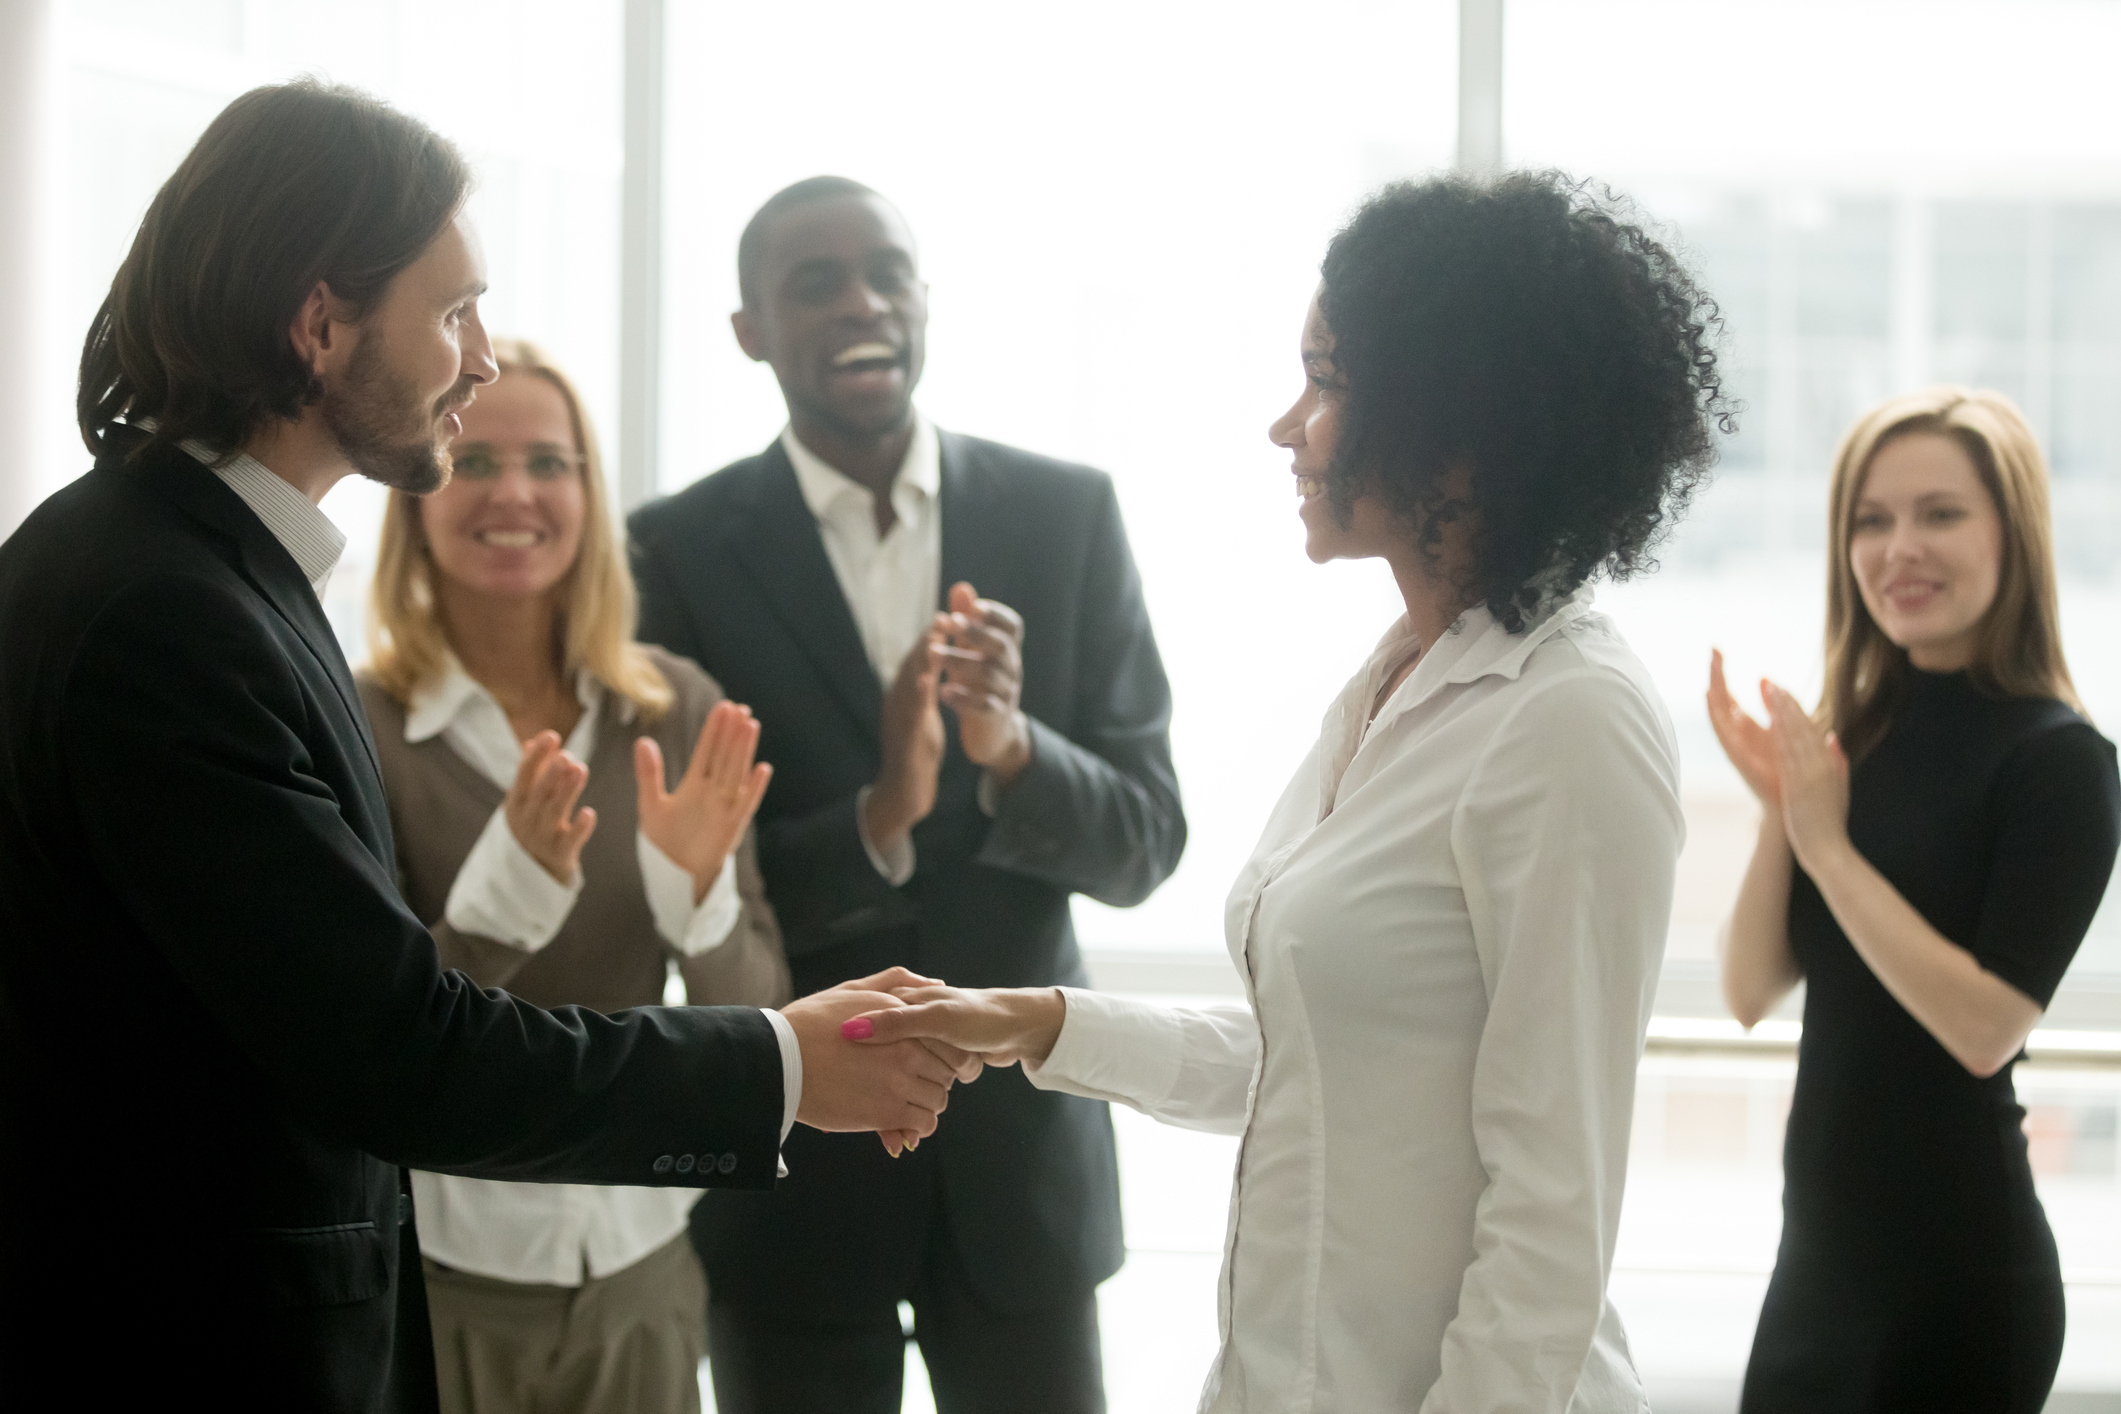 Grateful boss handshaking promoting african businesswoman congratulating with career achievement